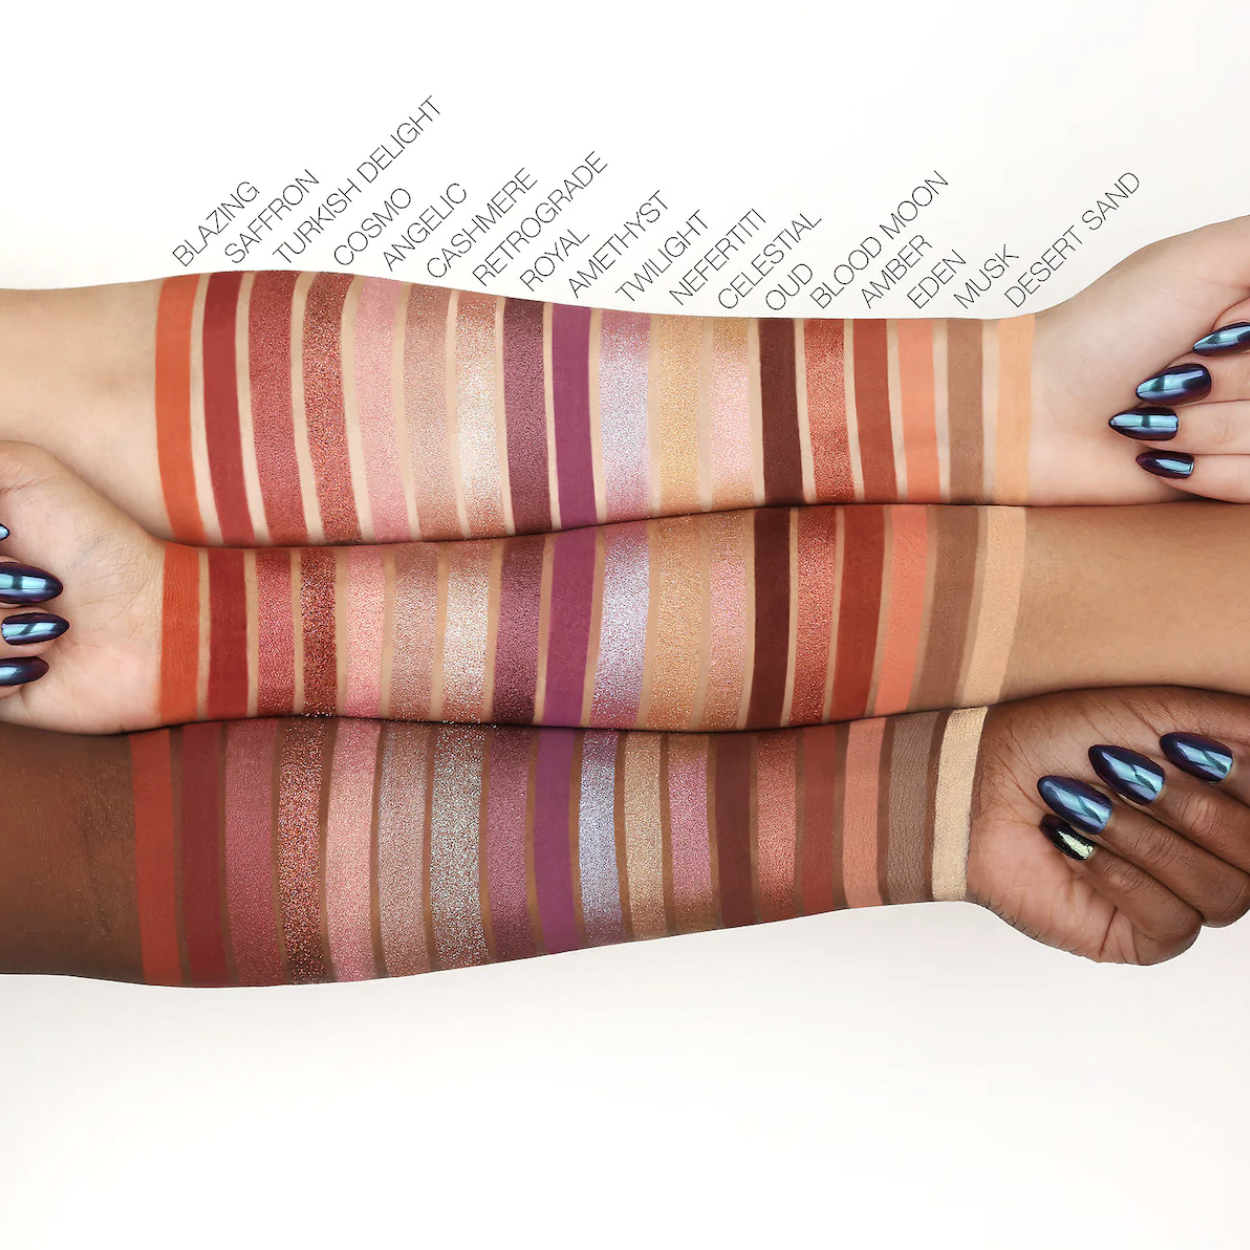 Models with light, tan, and deep skin tones showing swatches of reds, pinks, and browns